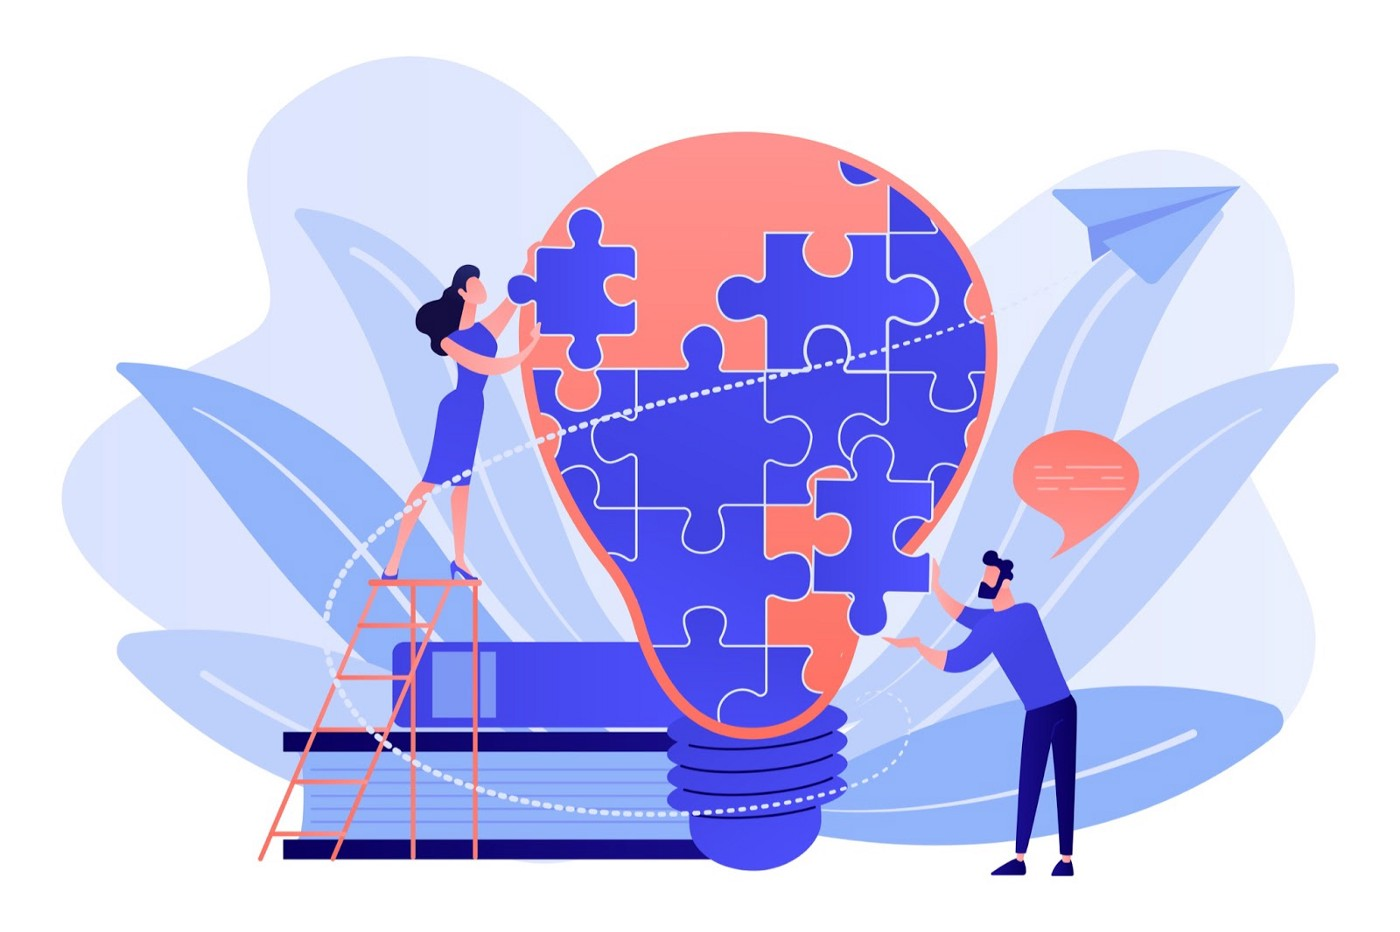 Illustration of man and women piecing together an idea.